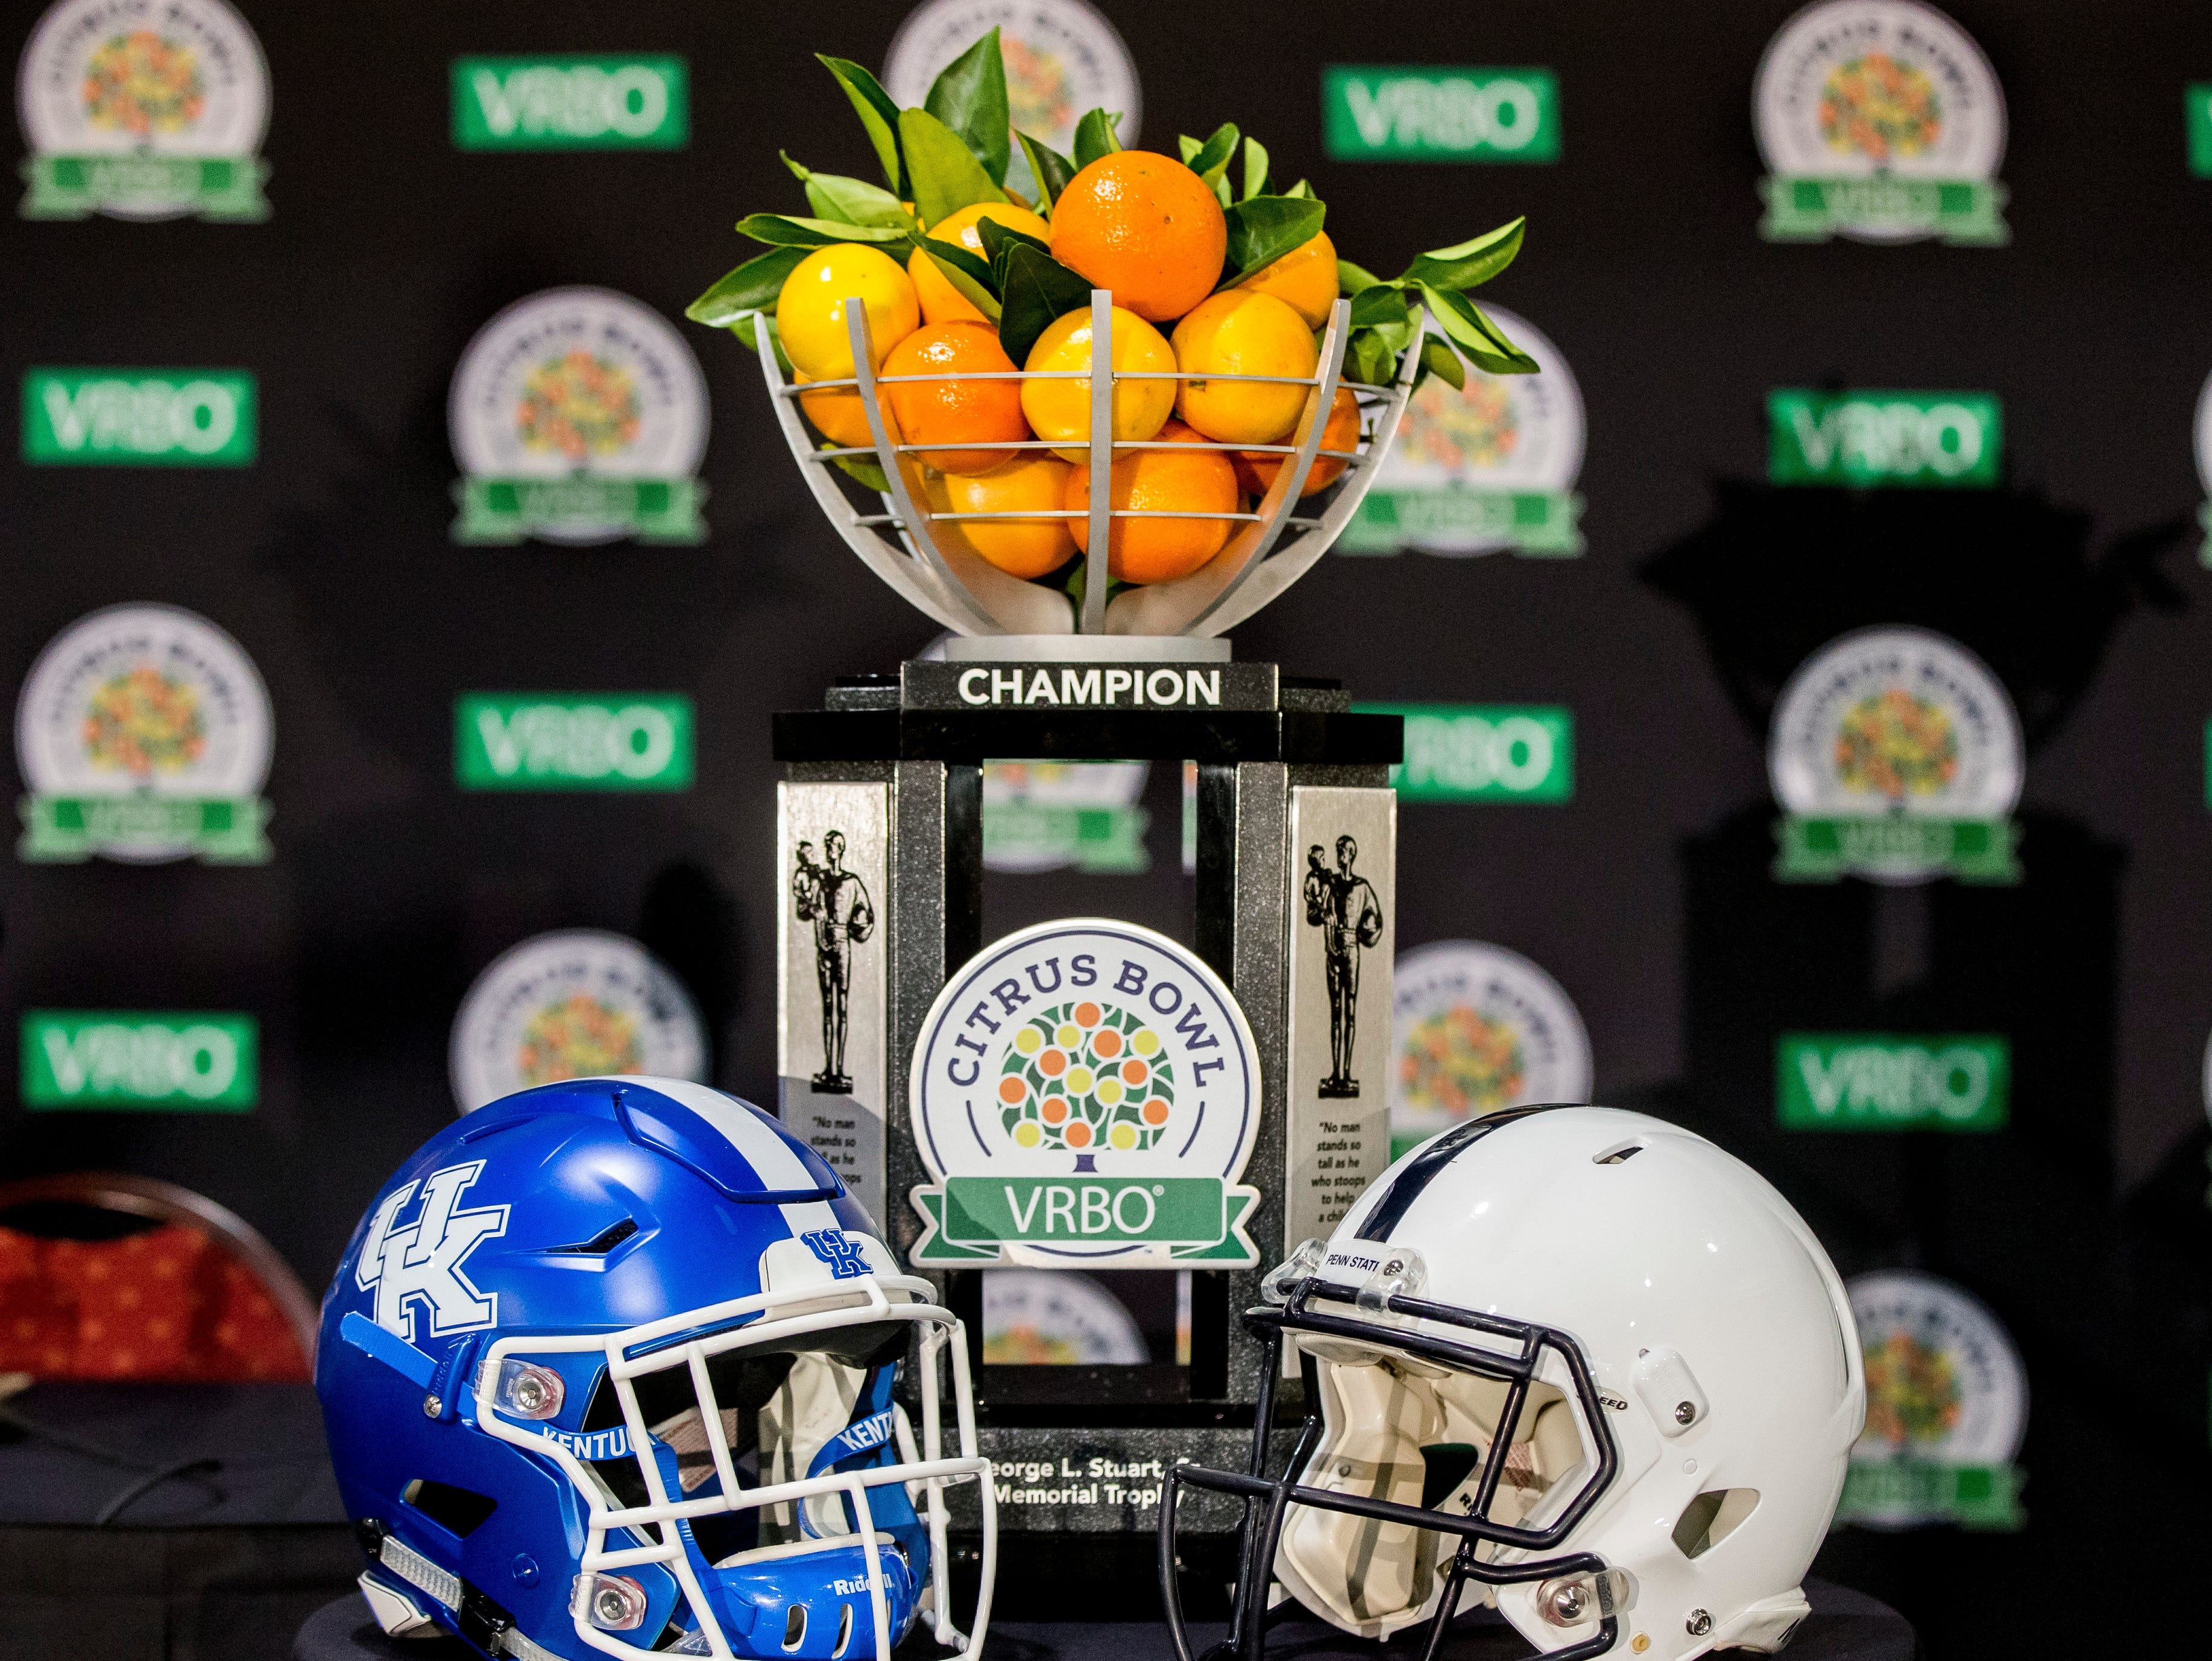 The Citrus Bowl trophy is displayed on Saturday, Dec. 29, 2018, in Orlando, Fla. (Joe Hermitt/The Patriot-News via AP)